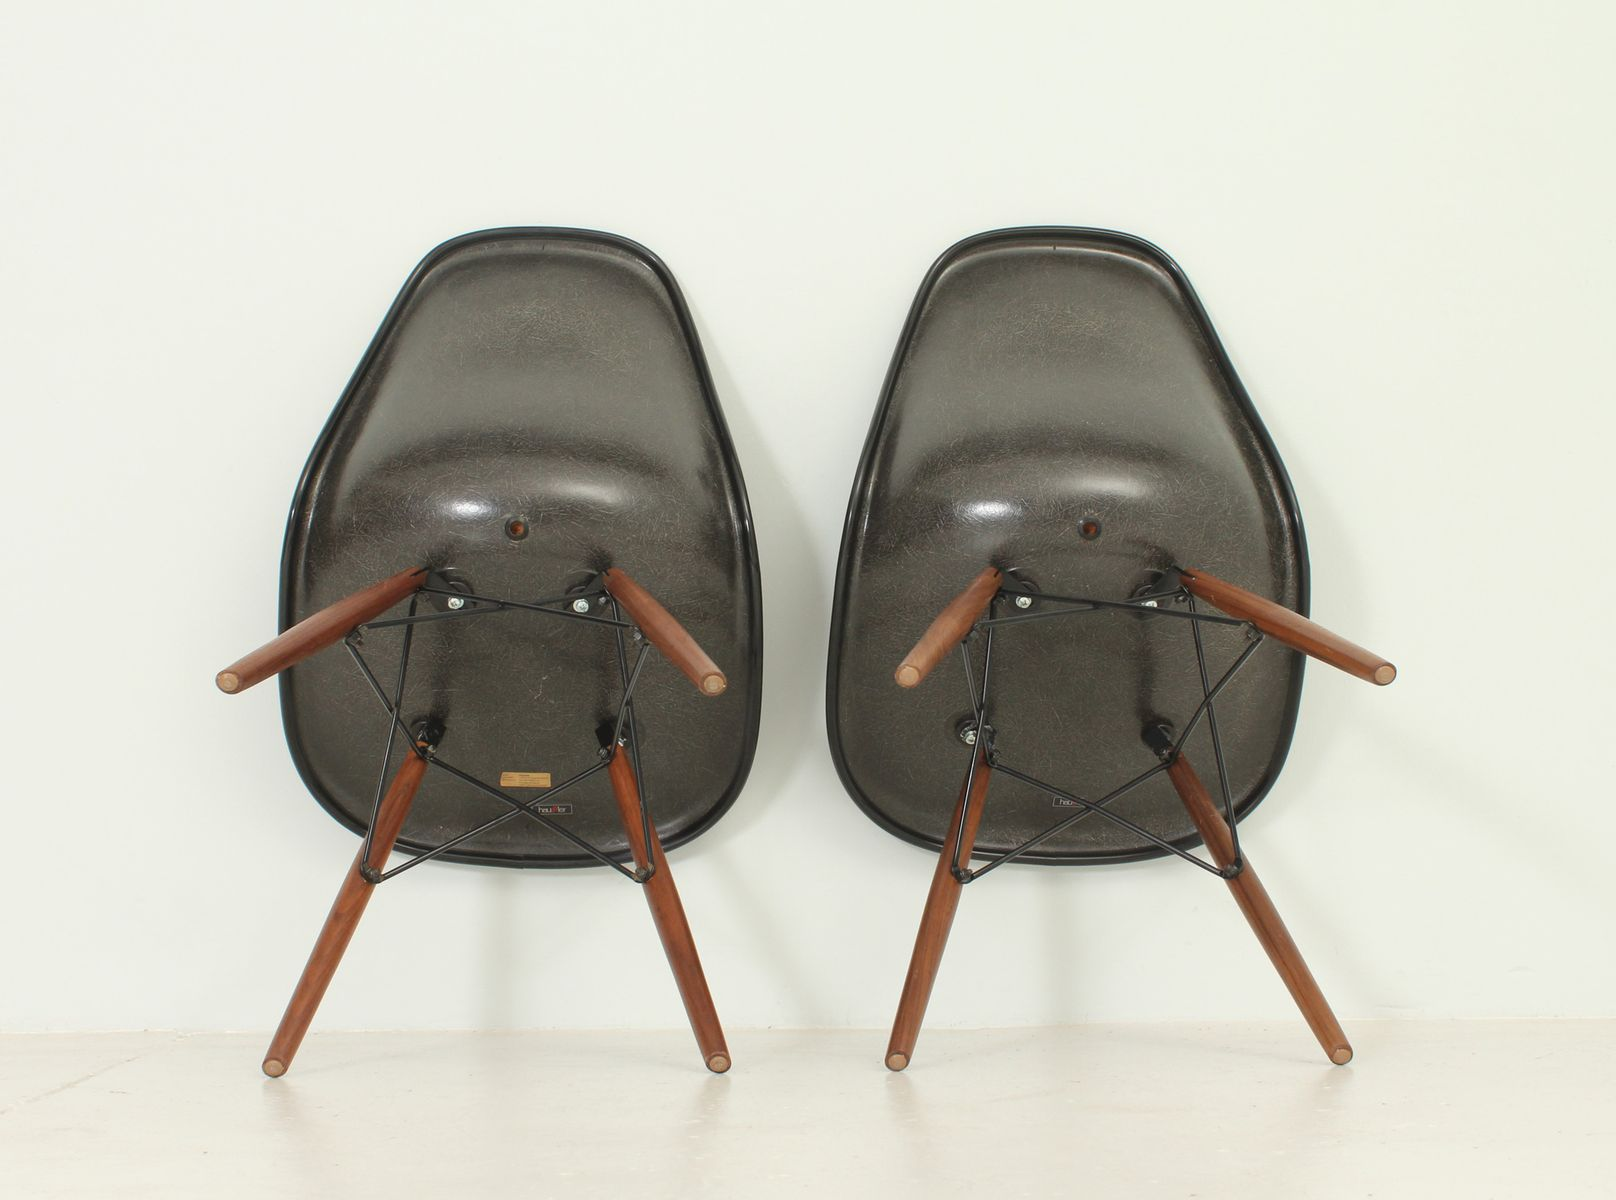 vintage dsw chairs by charles and ray eames for herman miller set of 2 for sale at pamono. Black Bedroom Furniture Sets. Home Design Ideas